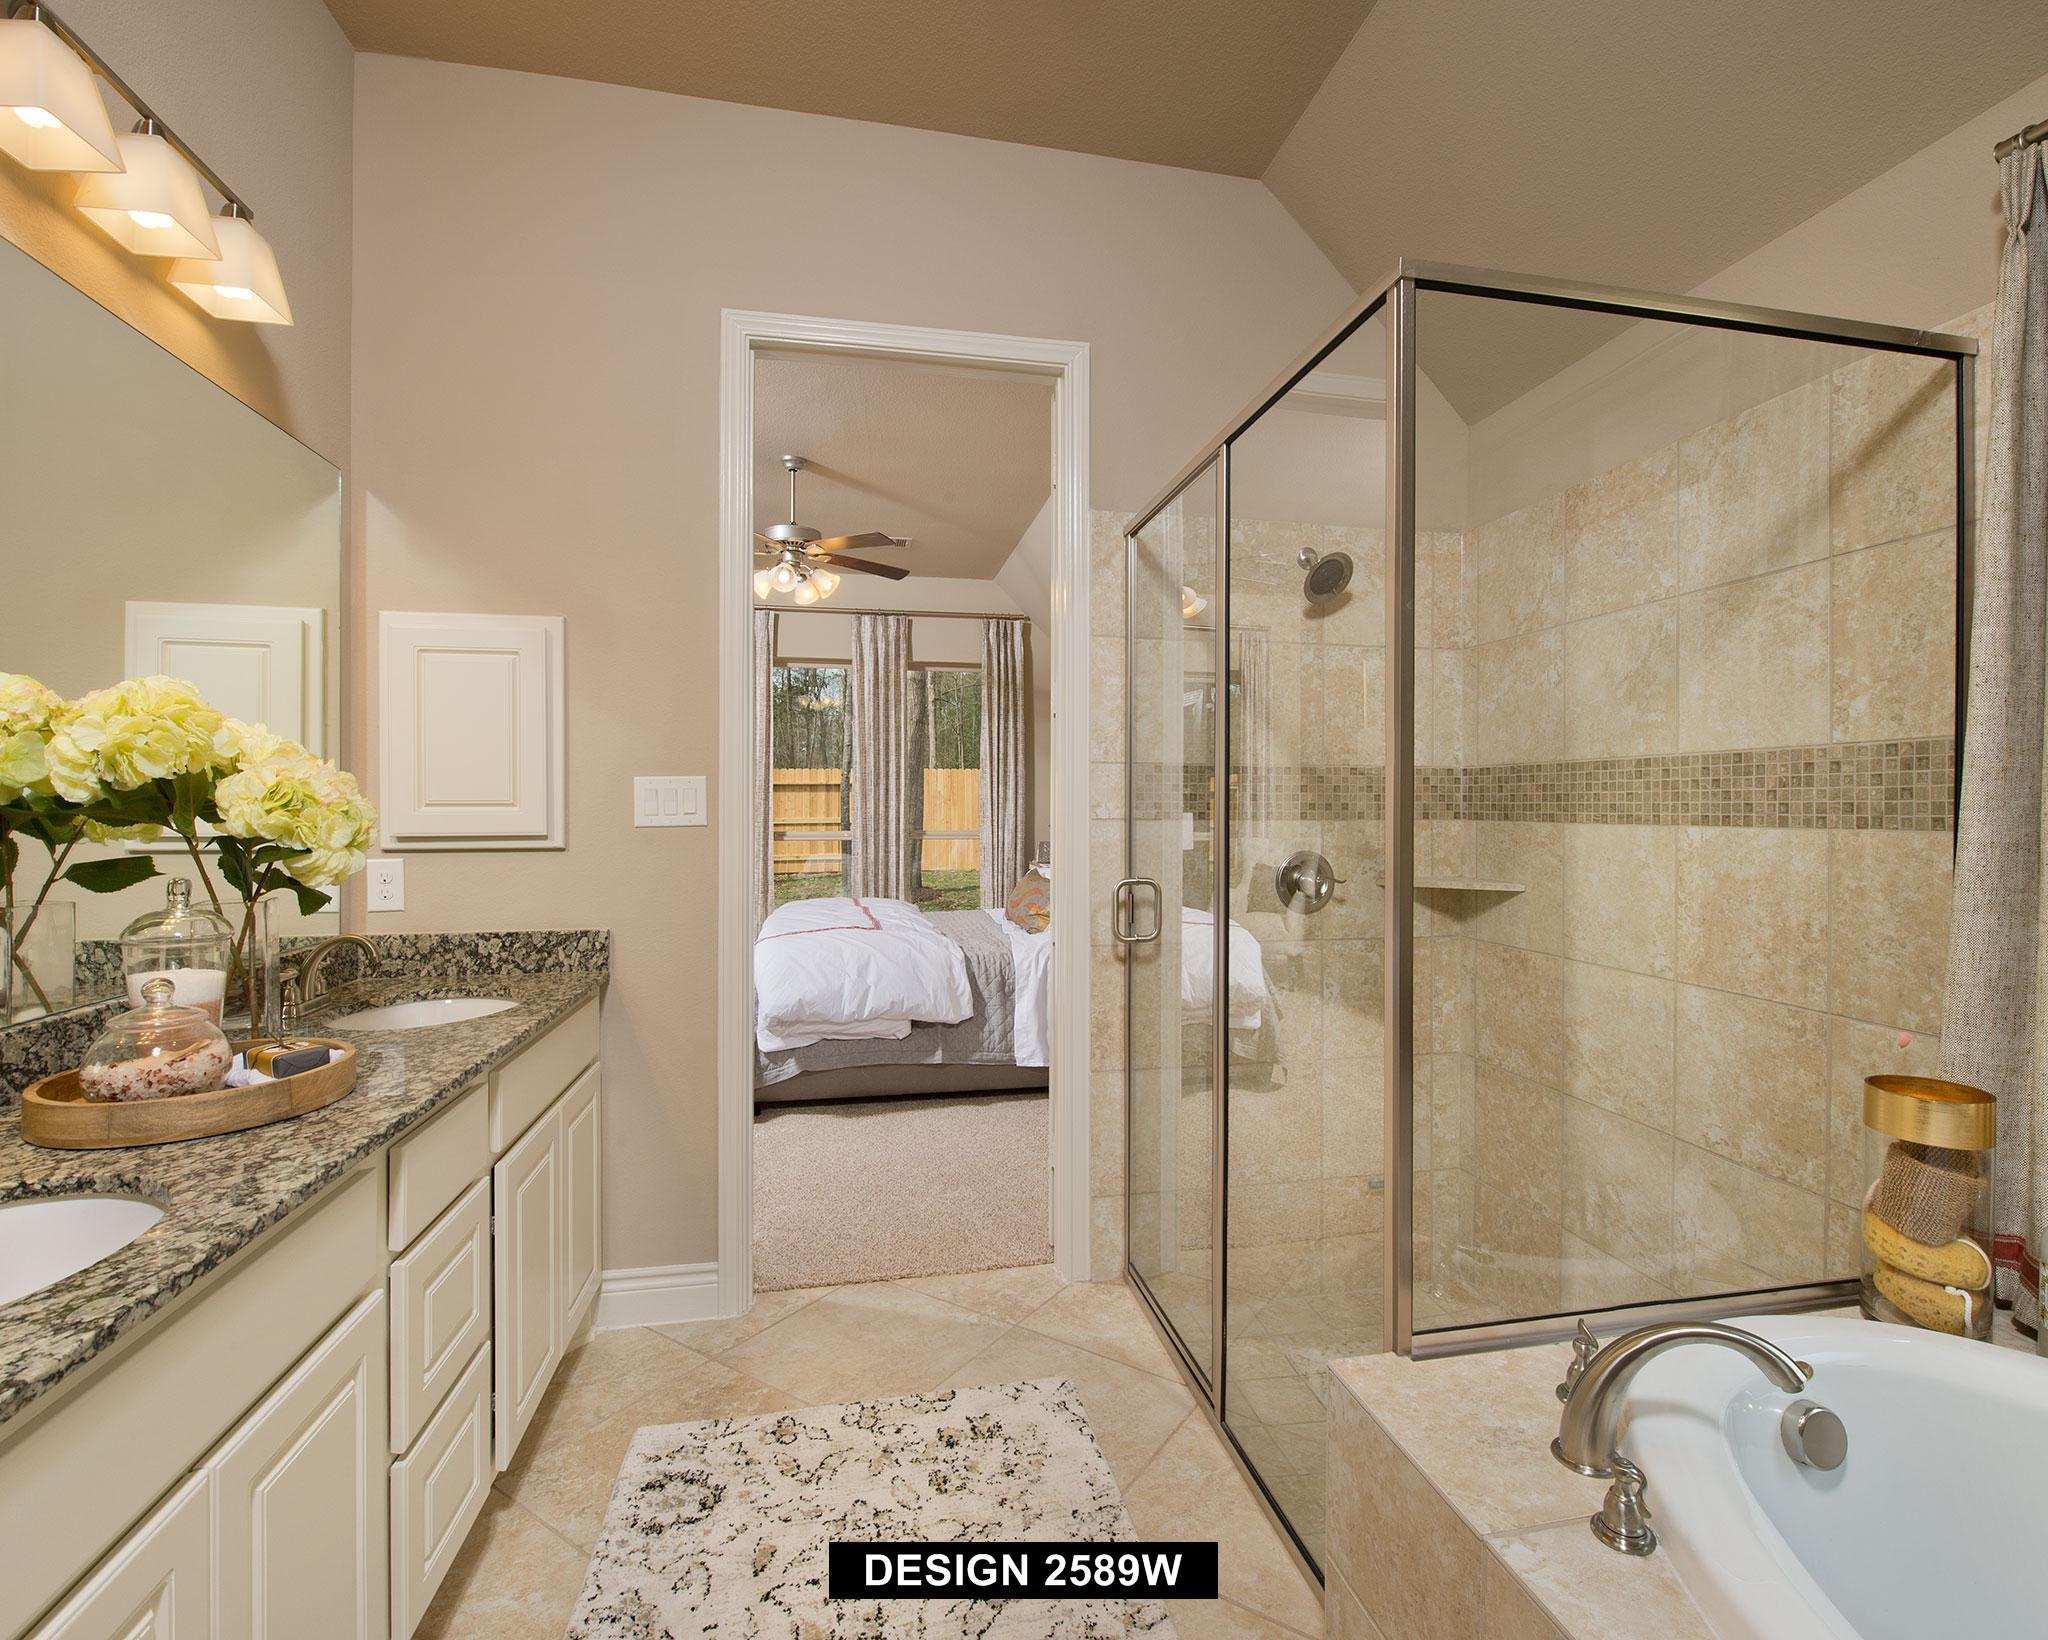 Bathroom featured in the 2589W By Perry Homes in Austin, TX